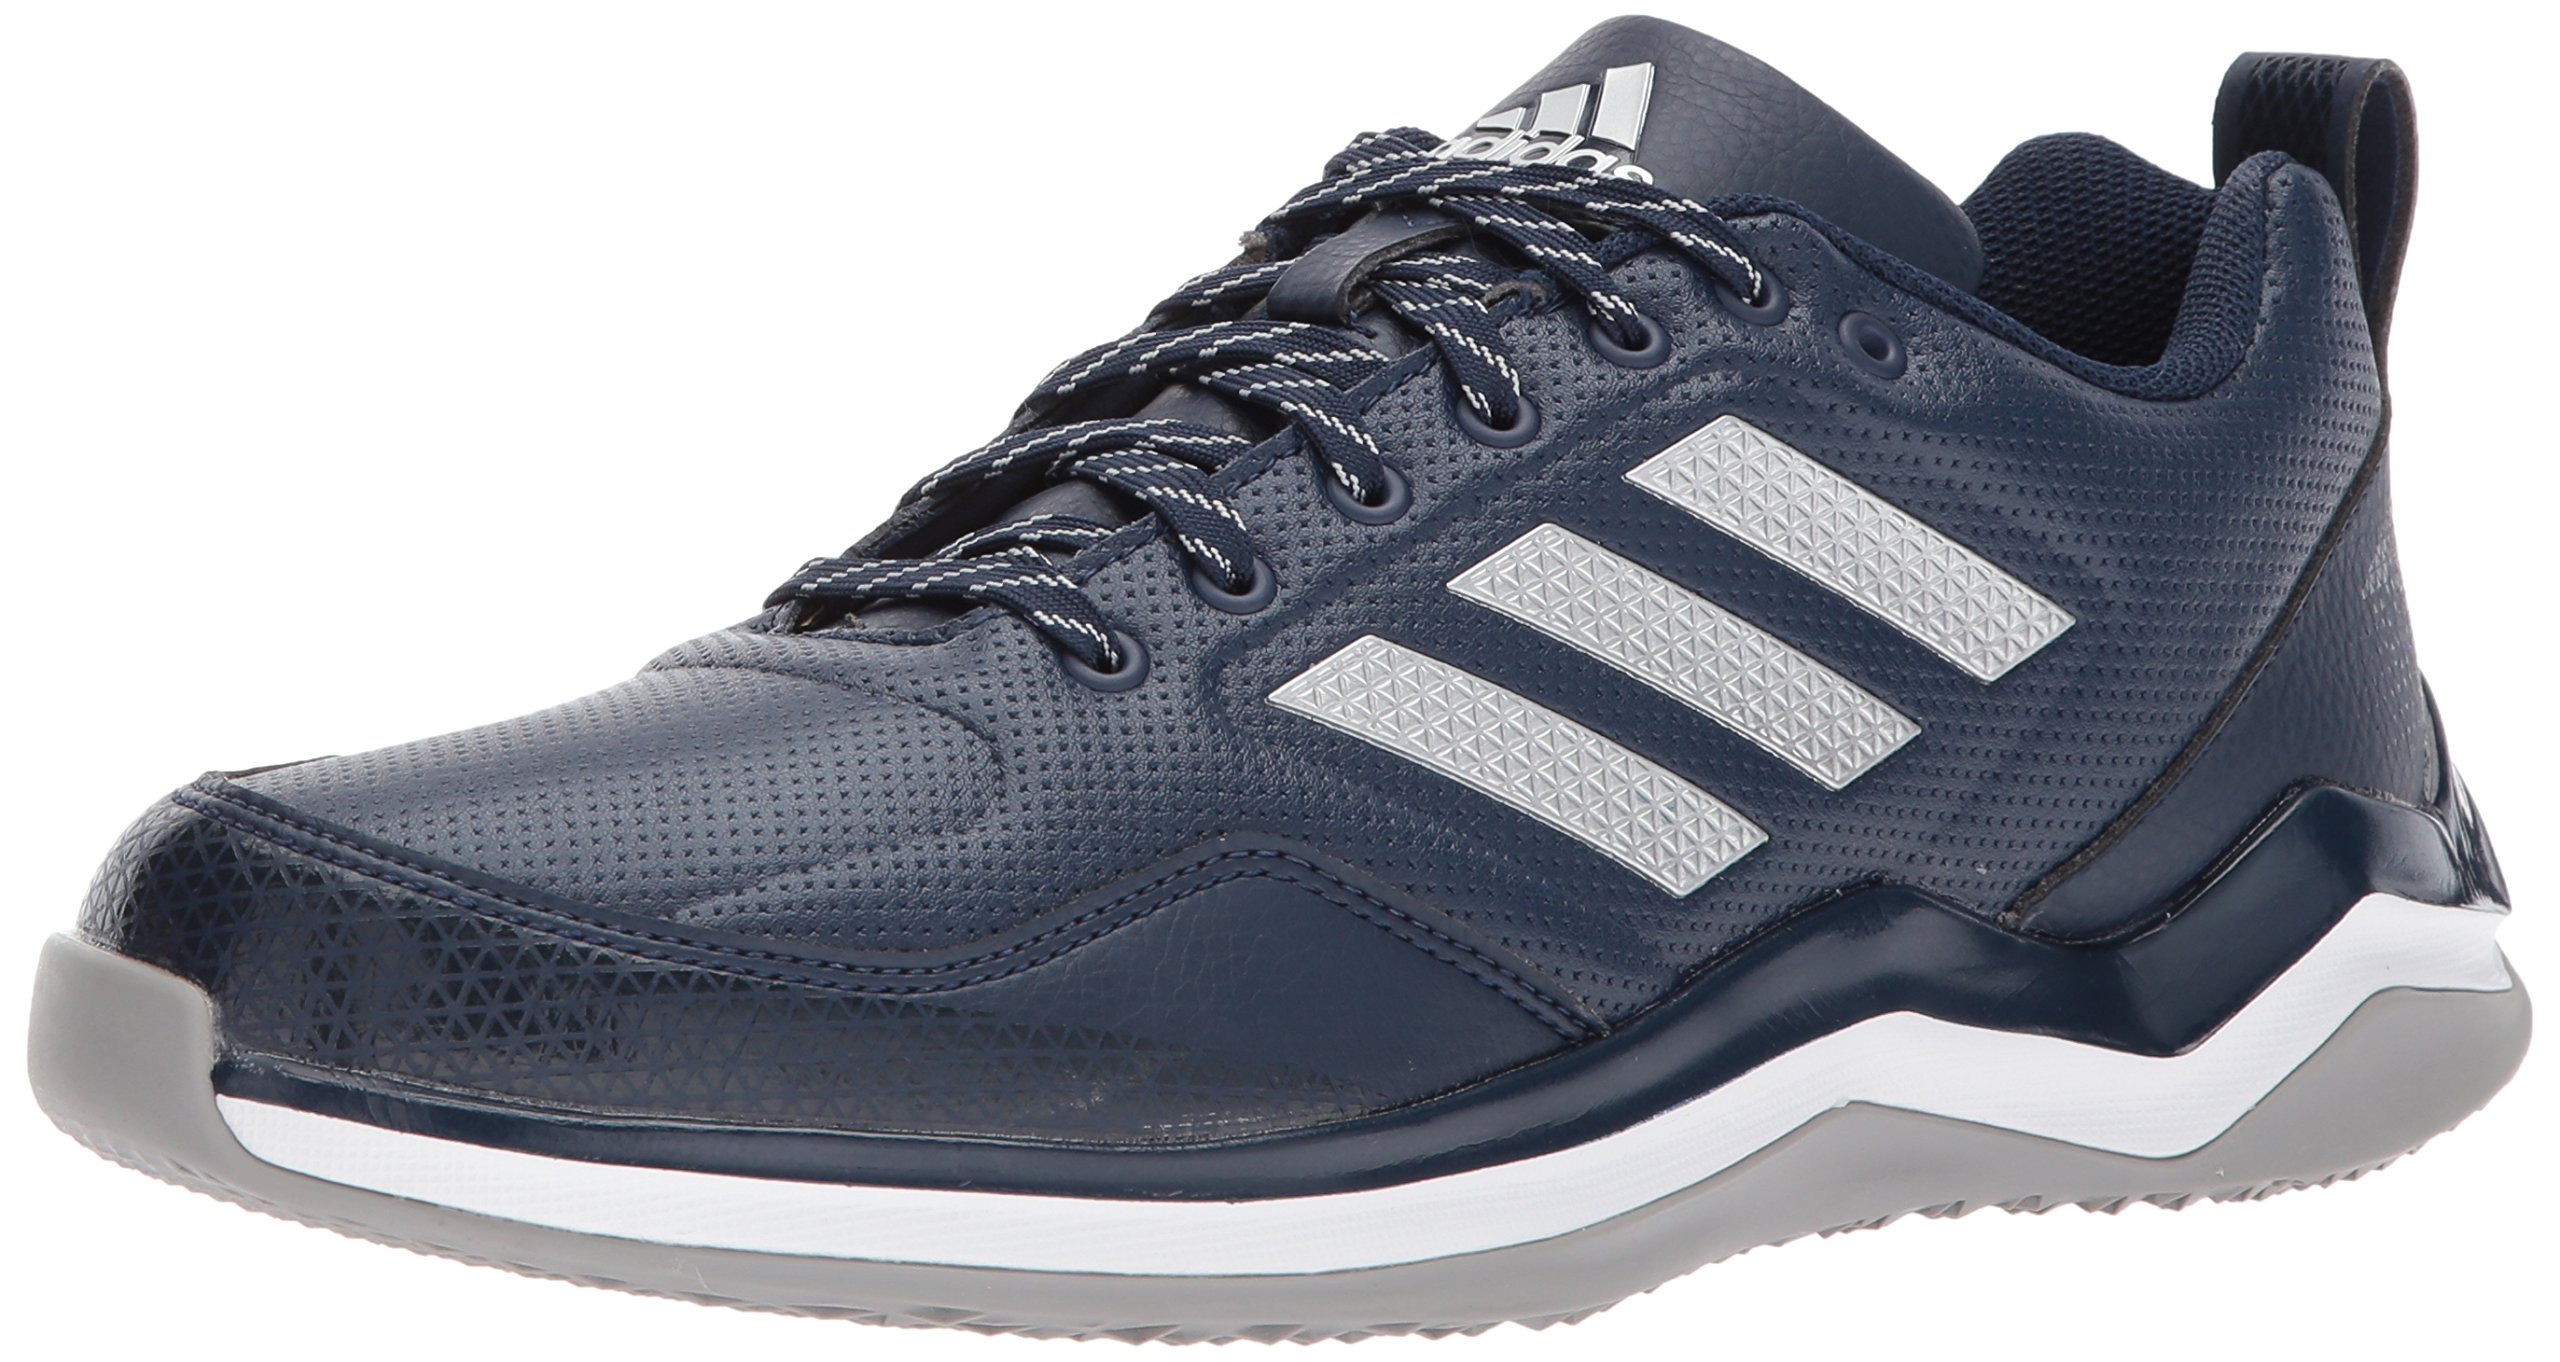 brand new ef2c3 2c714 Galleon - Adidas Mens Freak X Carbon Mid Cross Trainer, Collegiate Navy,  Silver Met, FTWR White, 8 M US